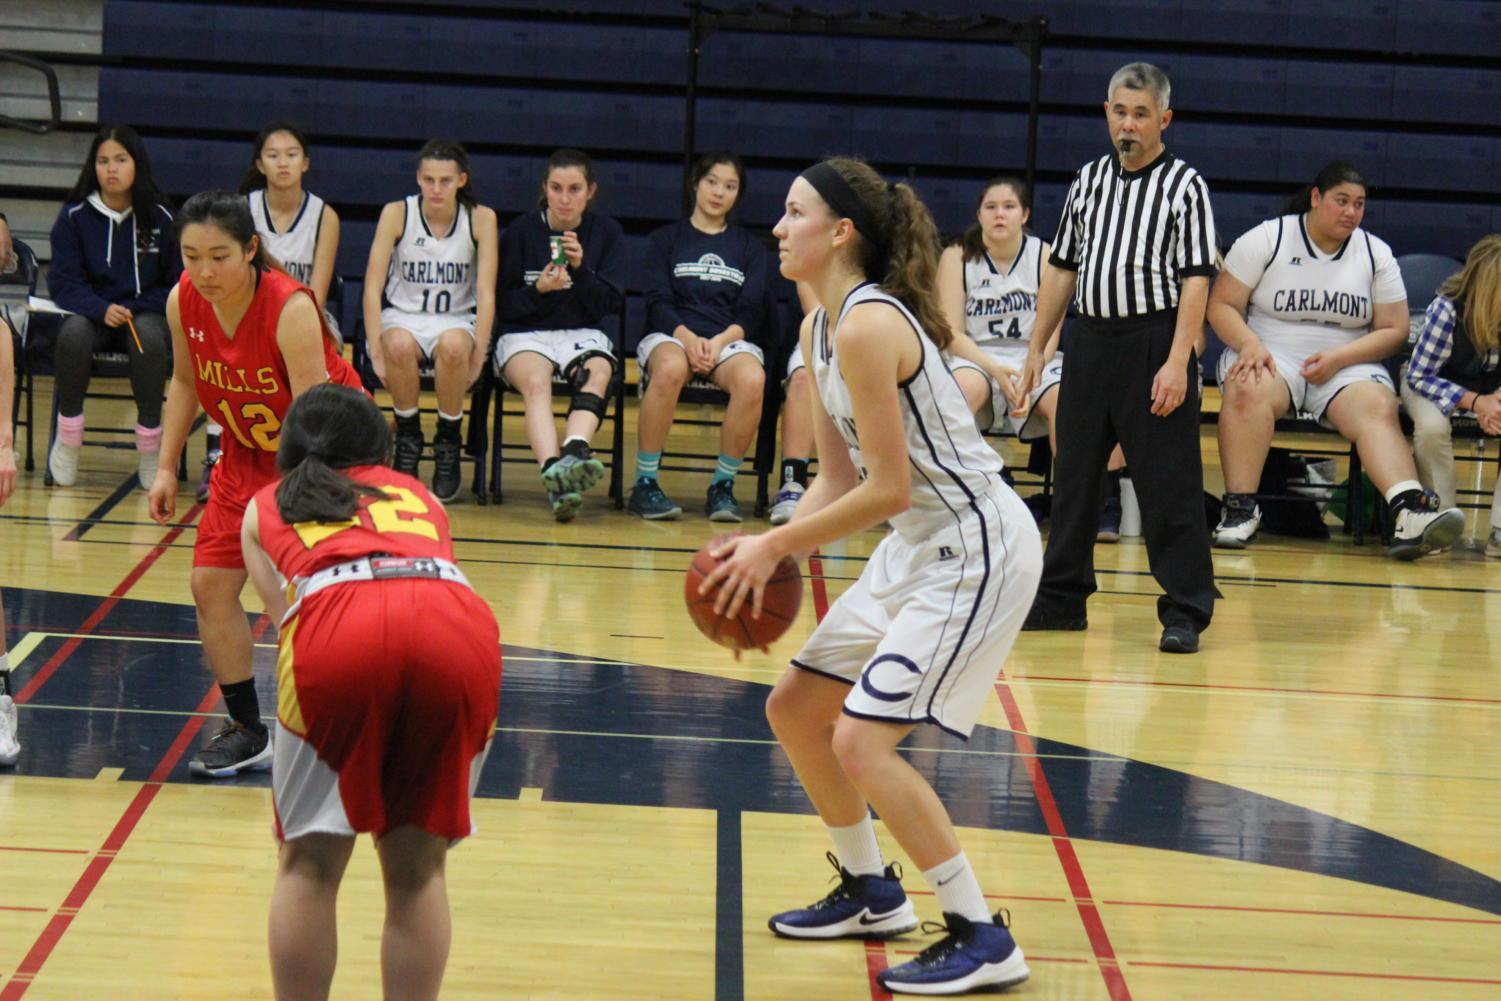 Junior Ashley Trierweiler sets up to take a free throw mid-game.